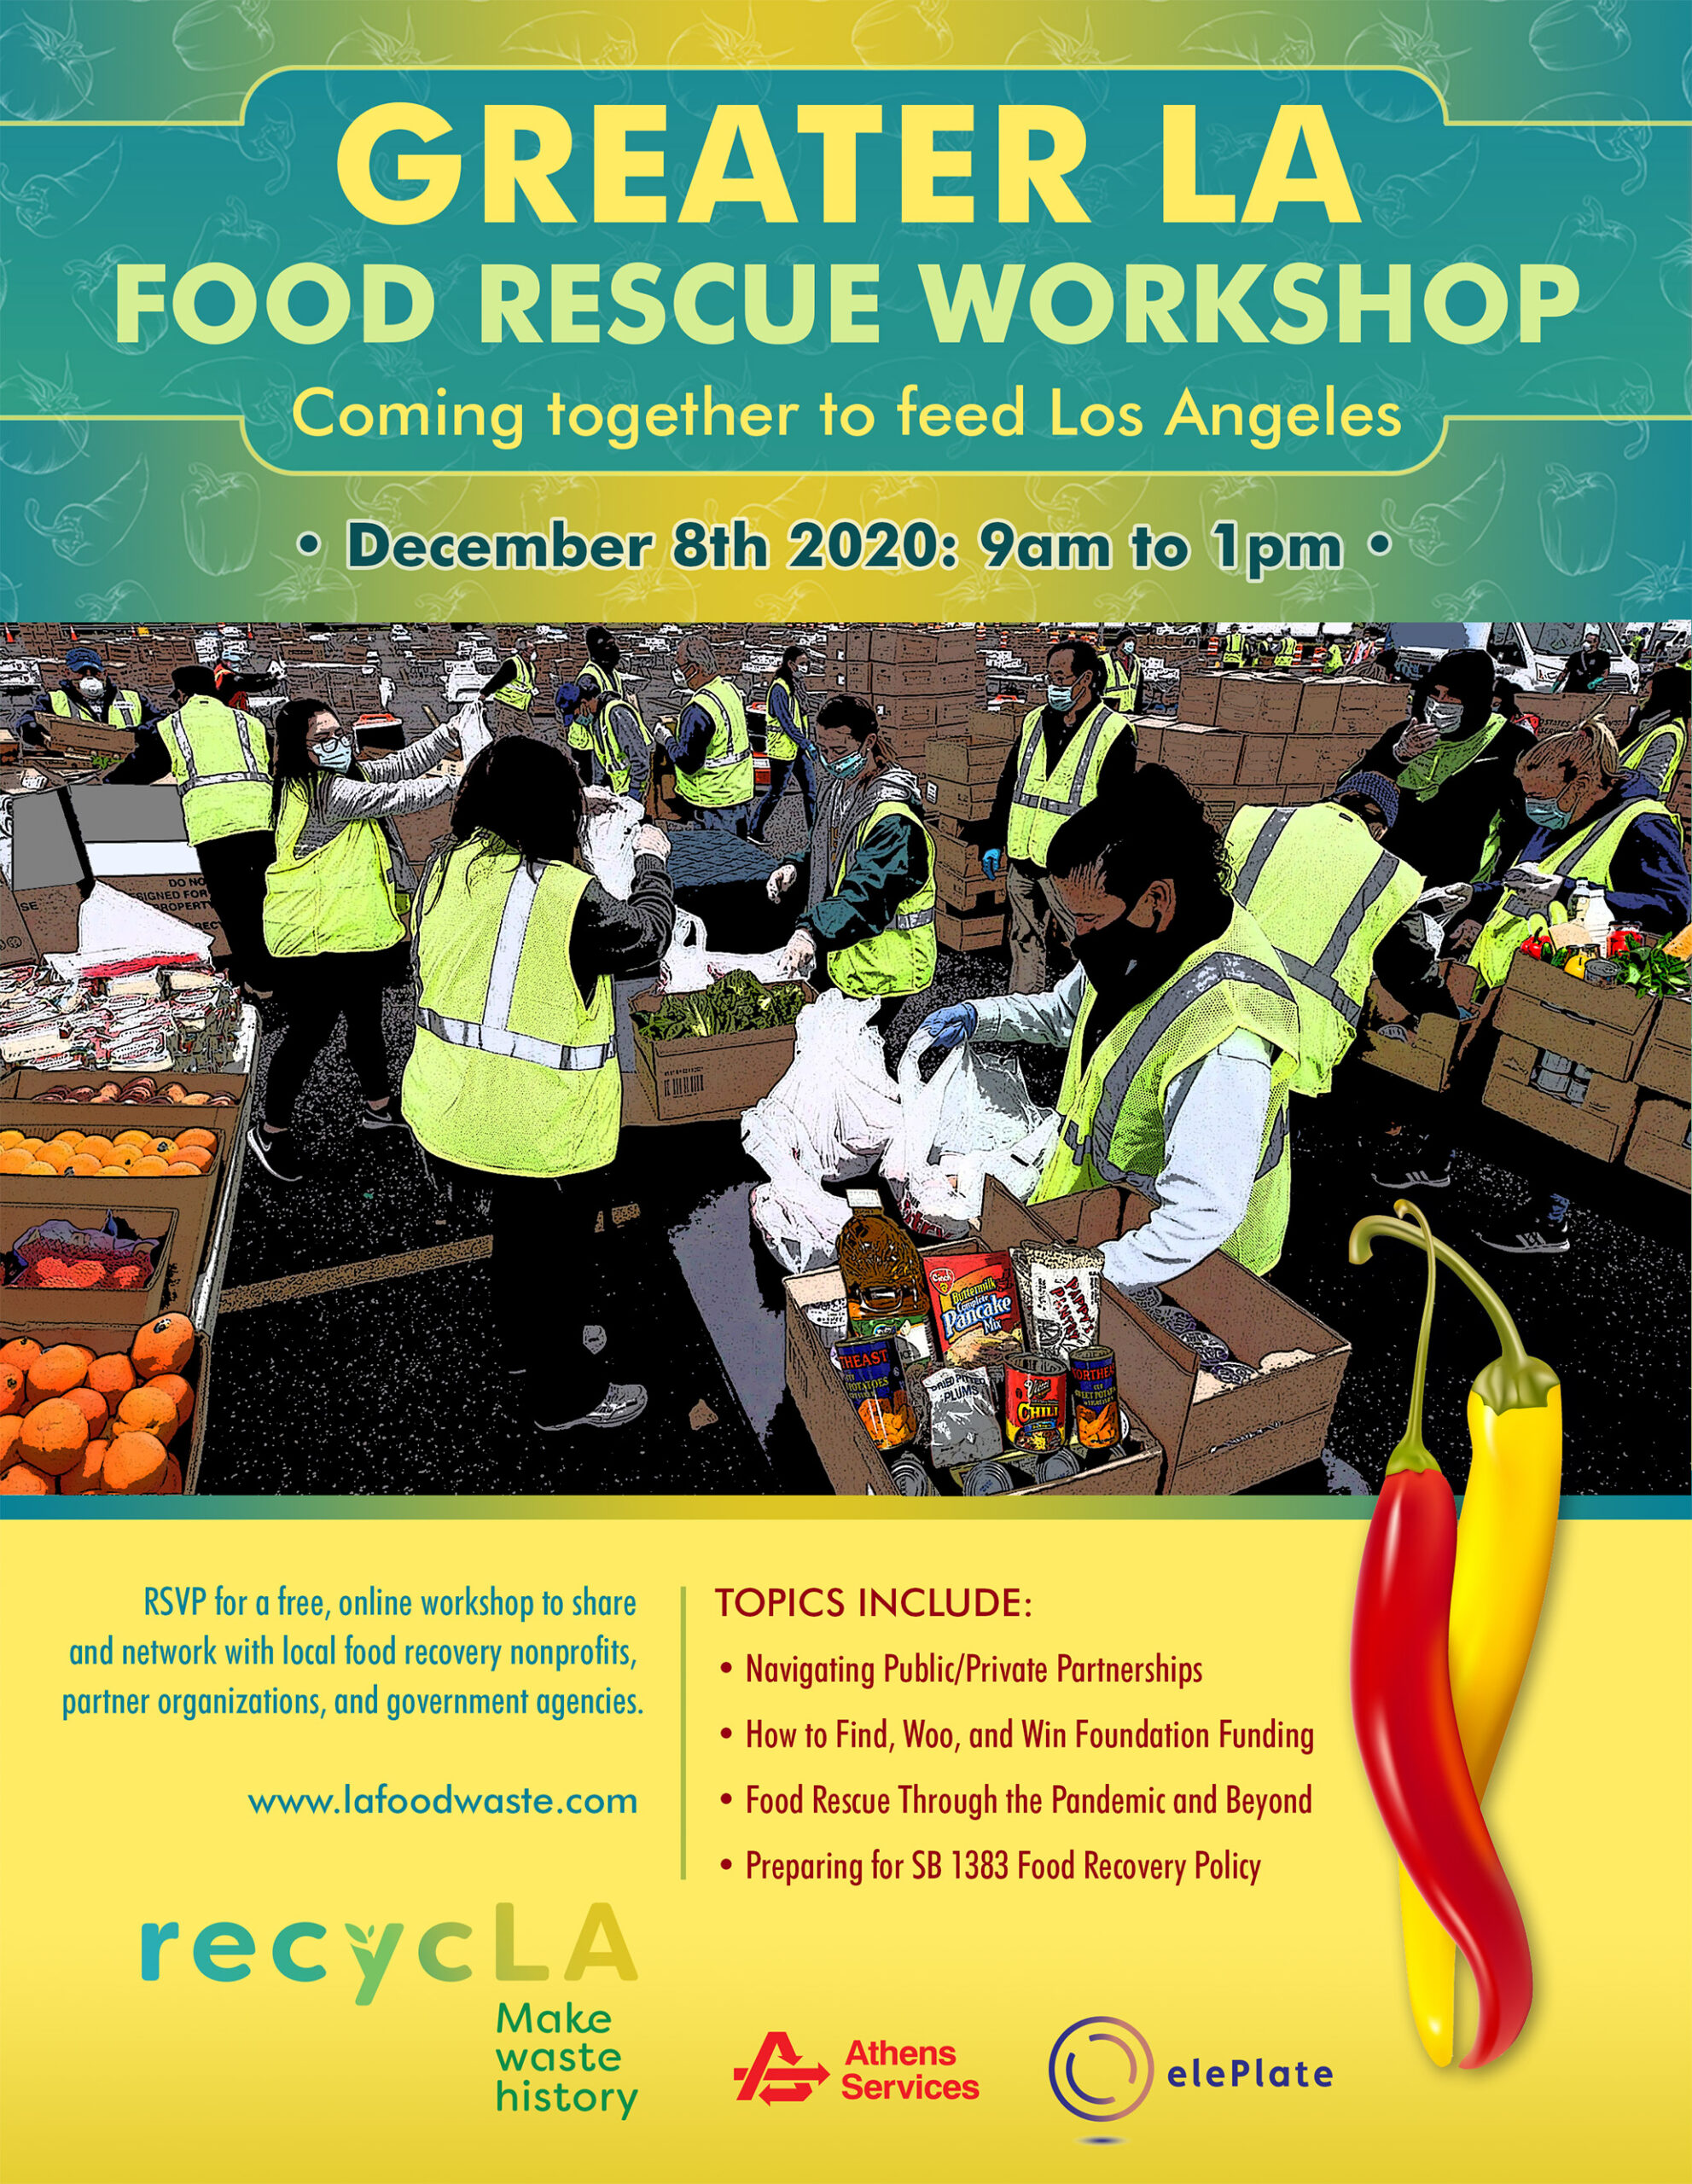 food rescue workshop LAFPC Dec 8 2020 event